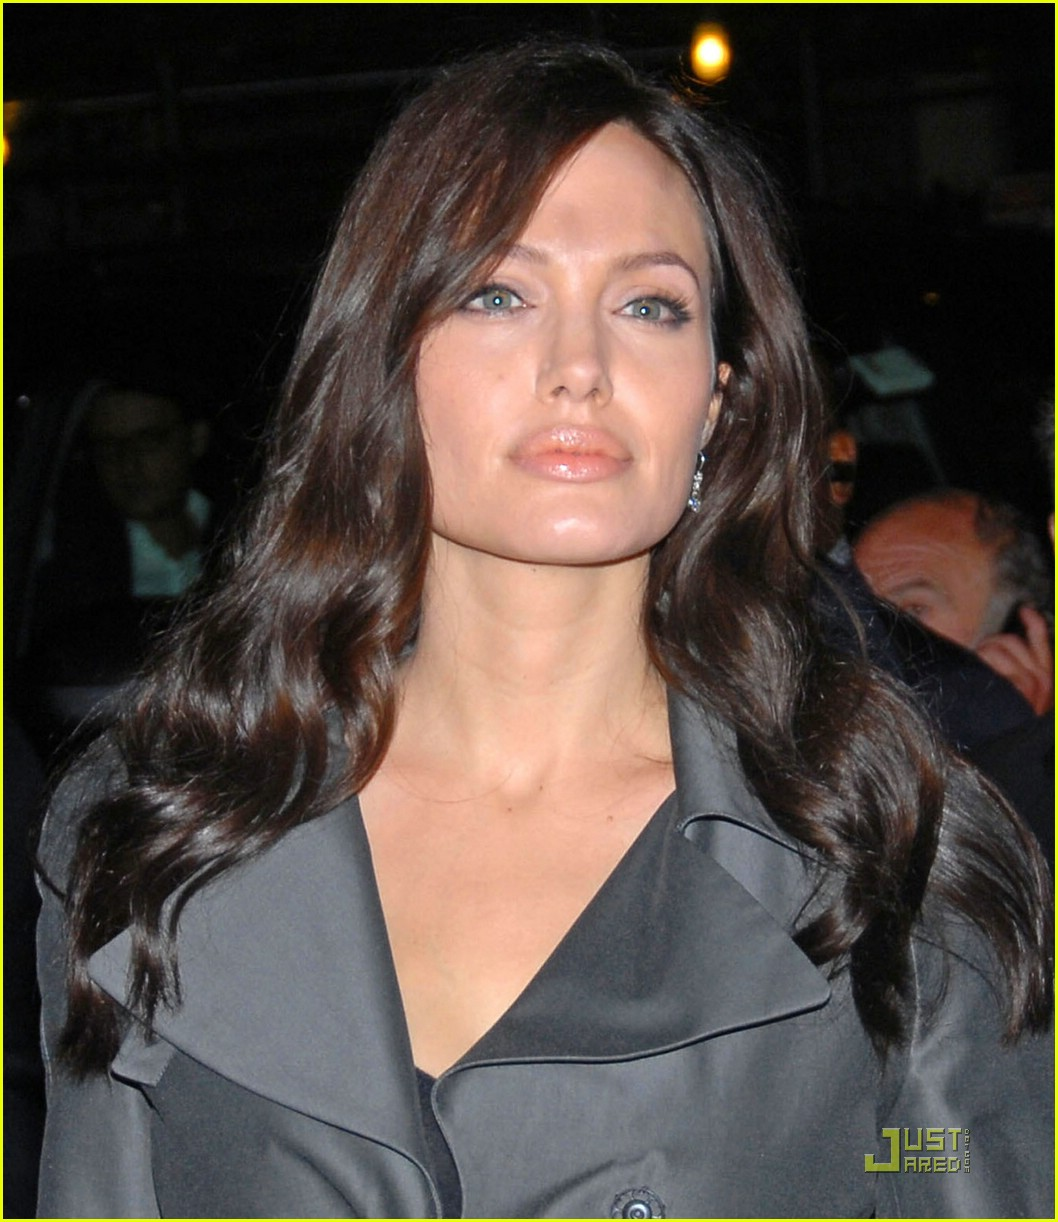 Angelina jolie hot boob can suggest